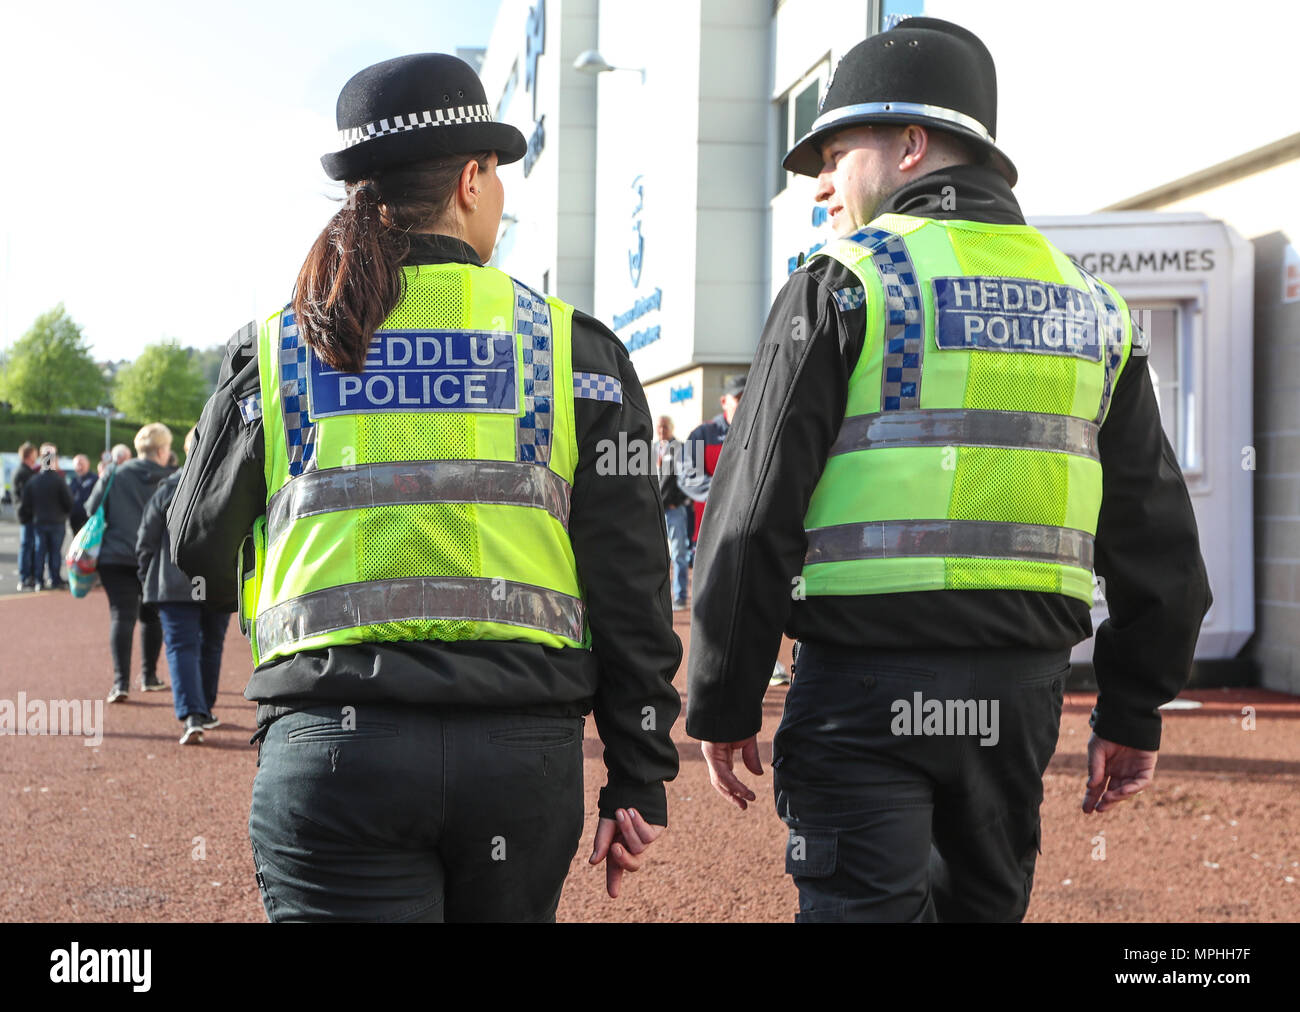 South Wales Police Force police officers on duty at a football match in Swansea ,Wales - Stock Image